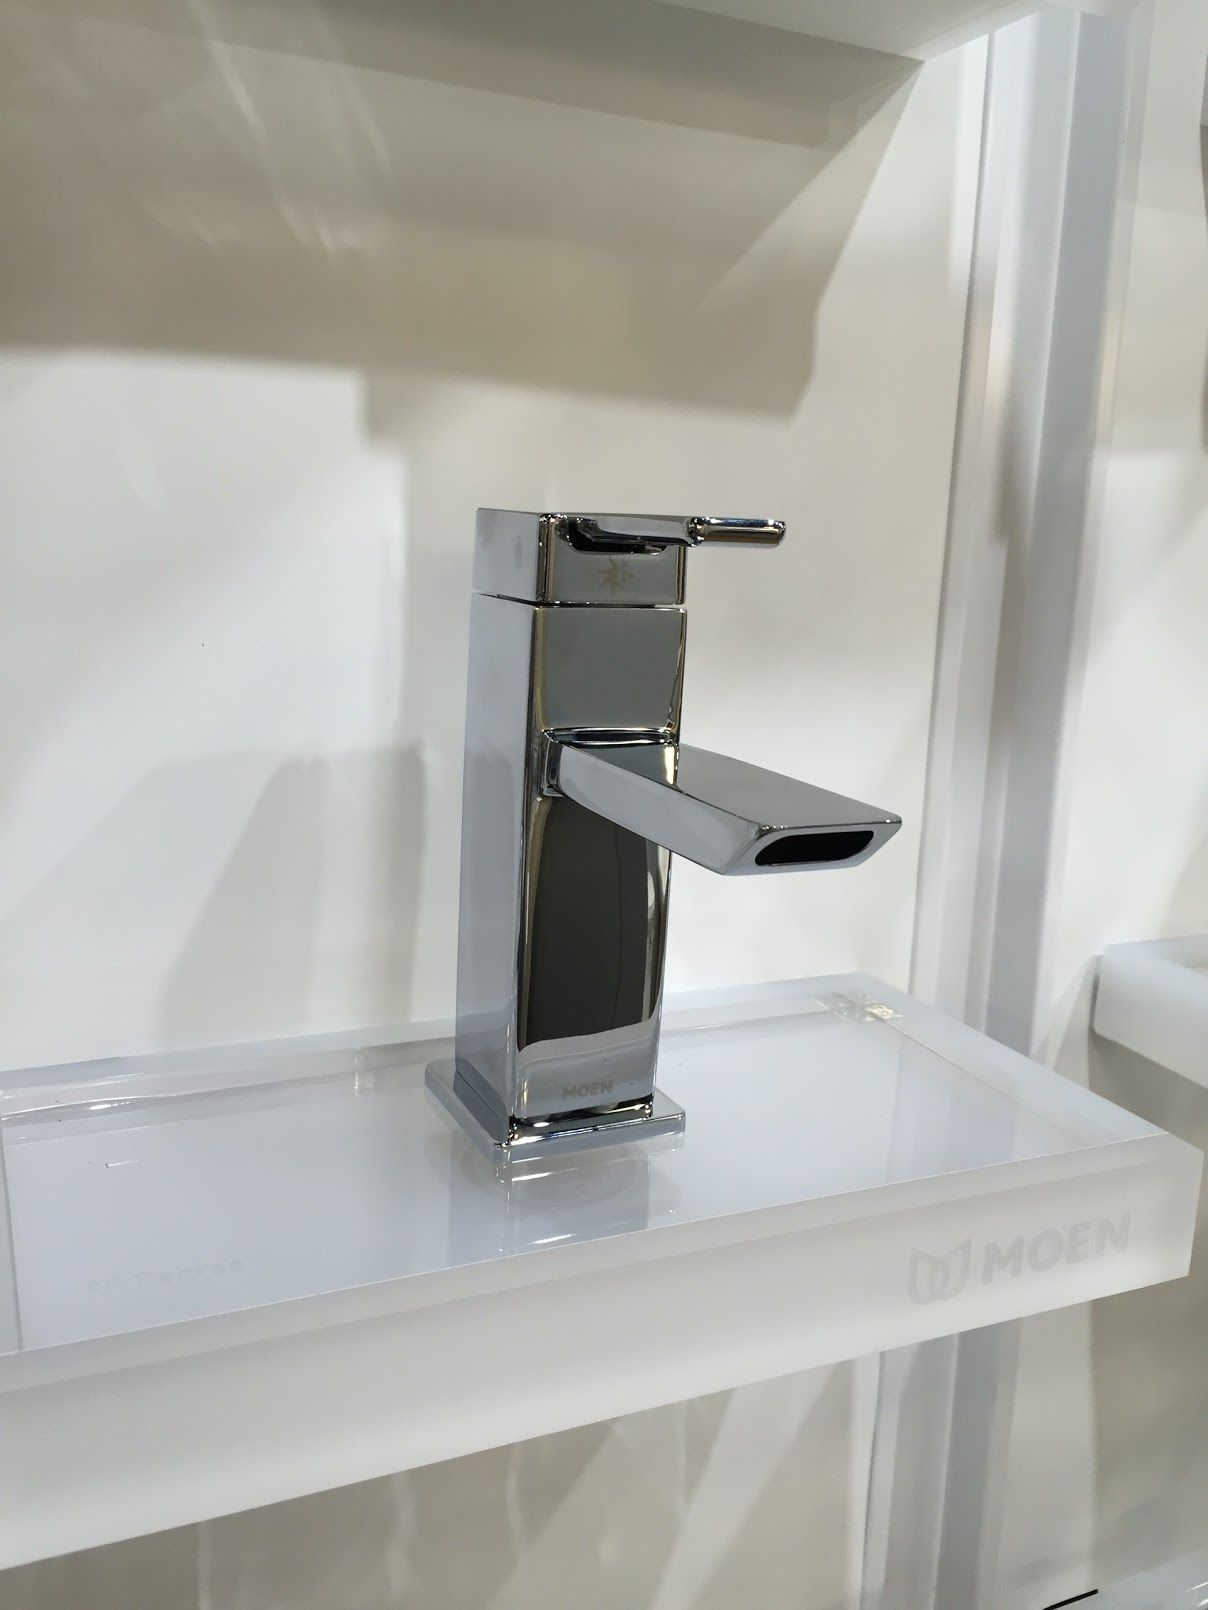 Peter thinks Moen is cheap, but like the idea of this faucet ...